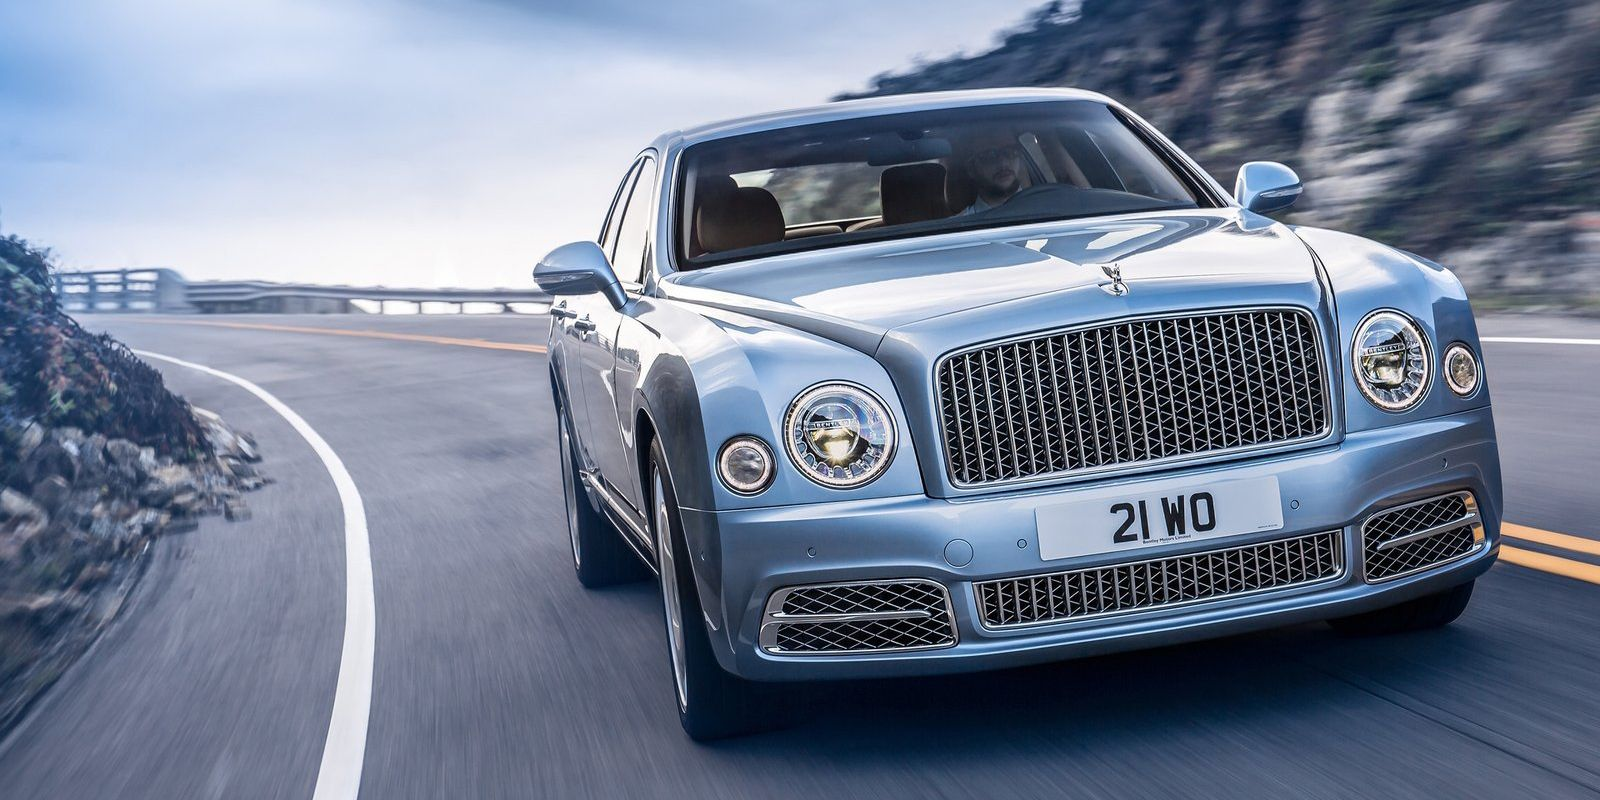 This Bentley may be named for the Mulsanne Corner on theCircuit de la Sarthe, but it's no race car. The Mulsanneis the most luxurious vehicle Bentley can build.The rear seats are inspired by first-class cabins in airplanes, and theoptionsavailable arelimited only by your imagination—and your budget.